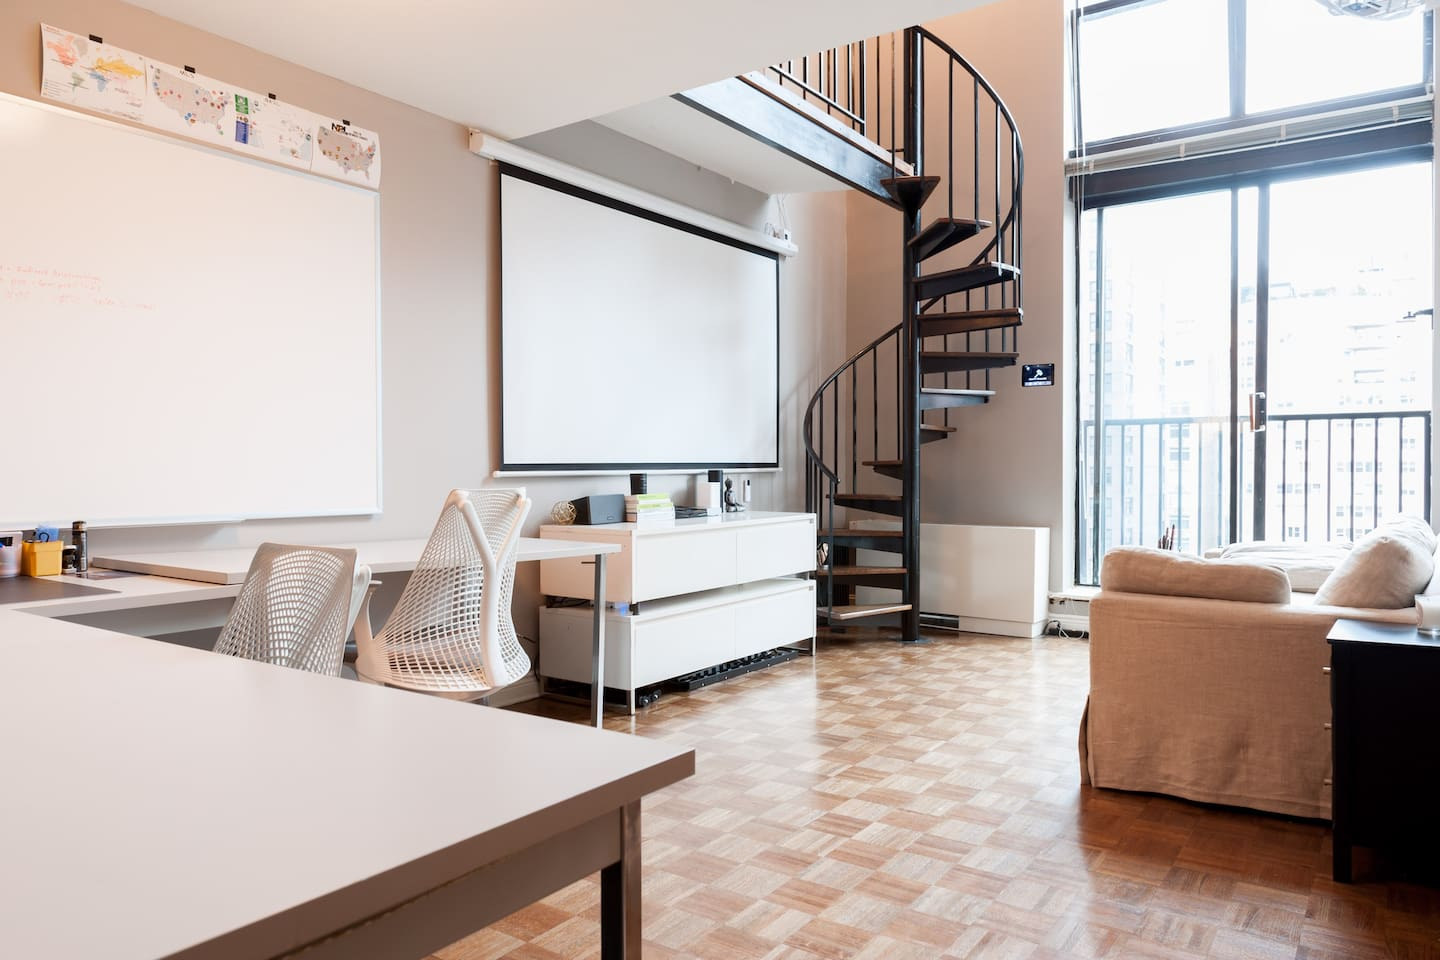 2 STORY LOFT WITH SPIRAL STAIRCASE - Apartments for Rent in New York ...